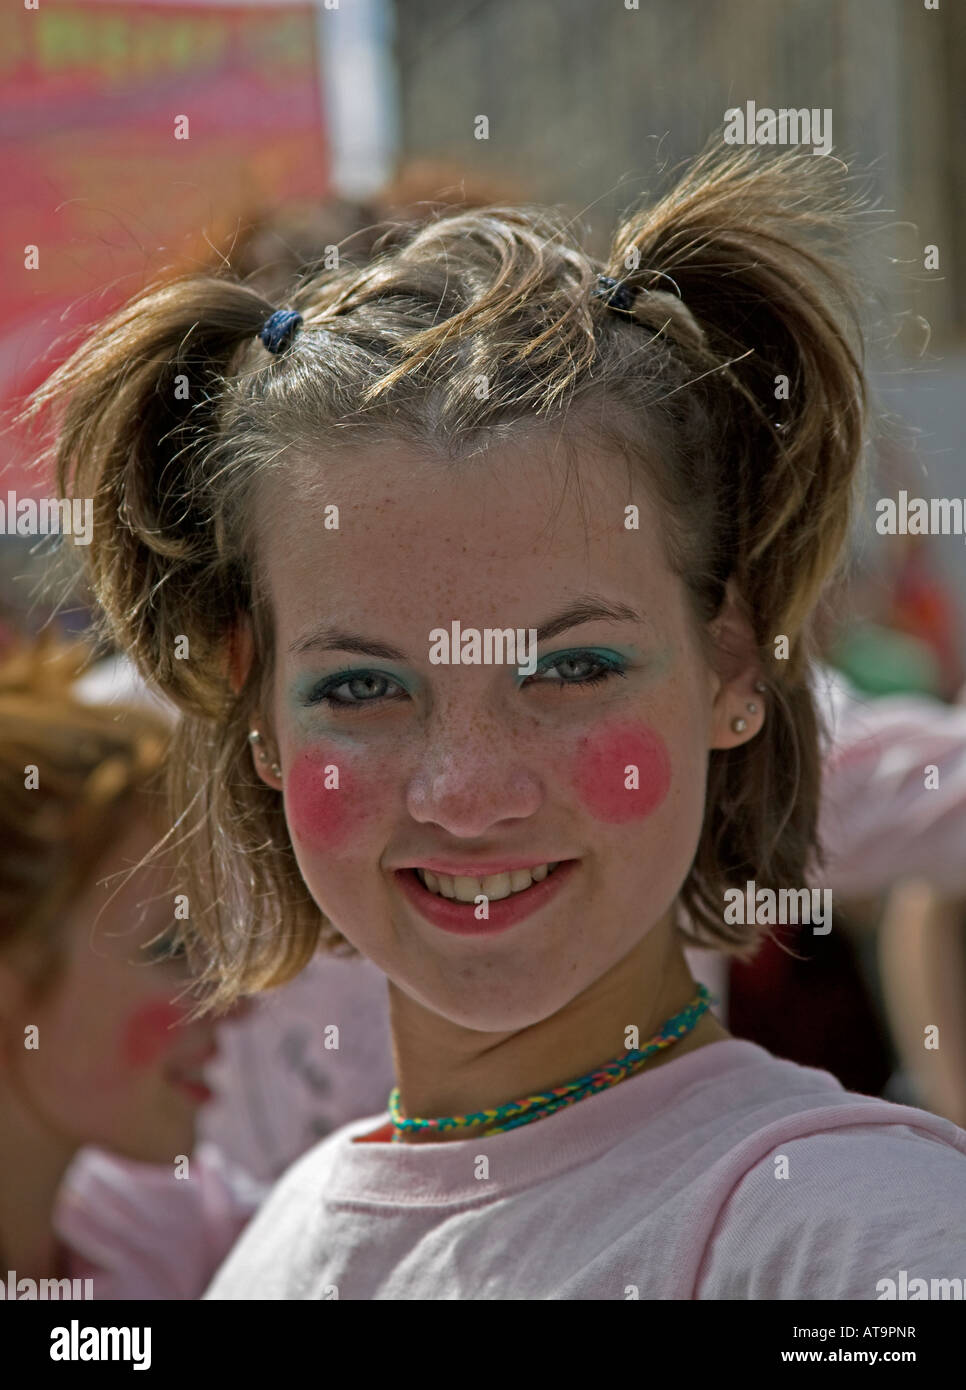 Attractive young perform with freckles and red makeup on cheeks poses, Edinburgh Fringe Festival, Scotland, UK, - Stock Image